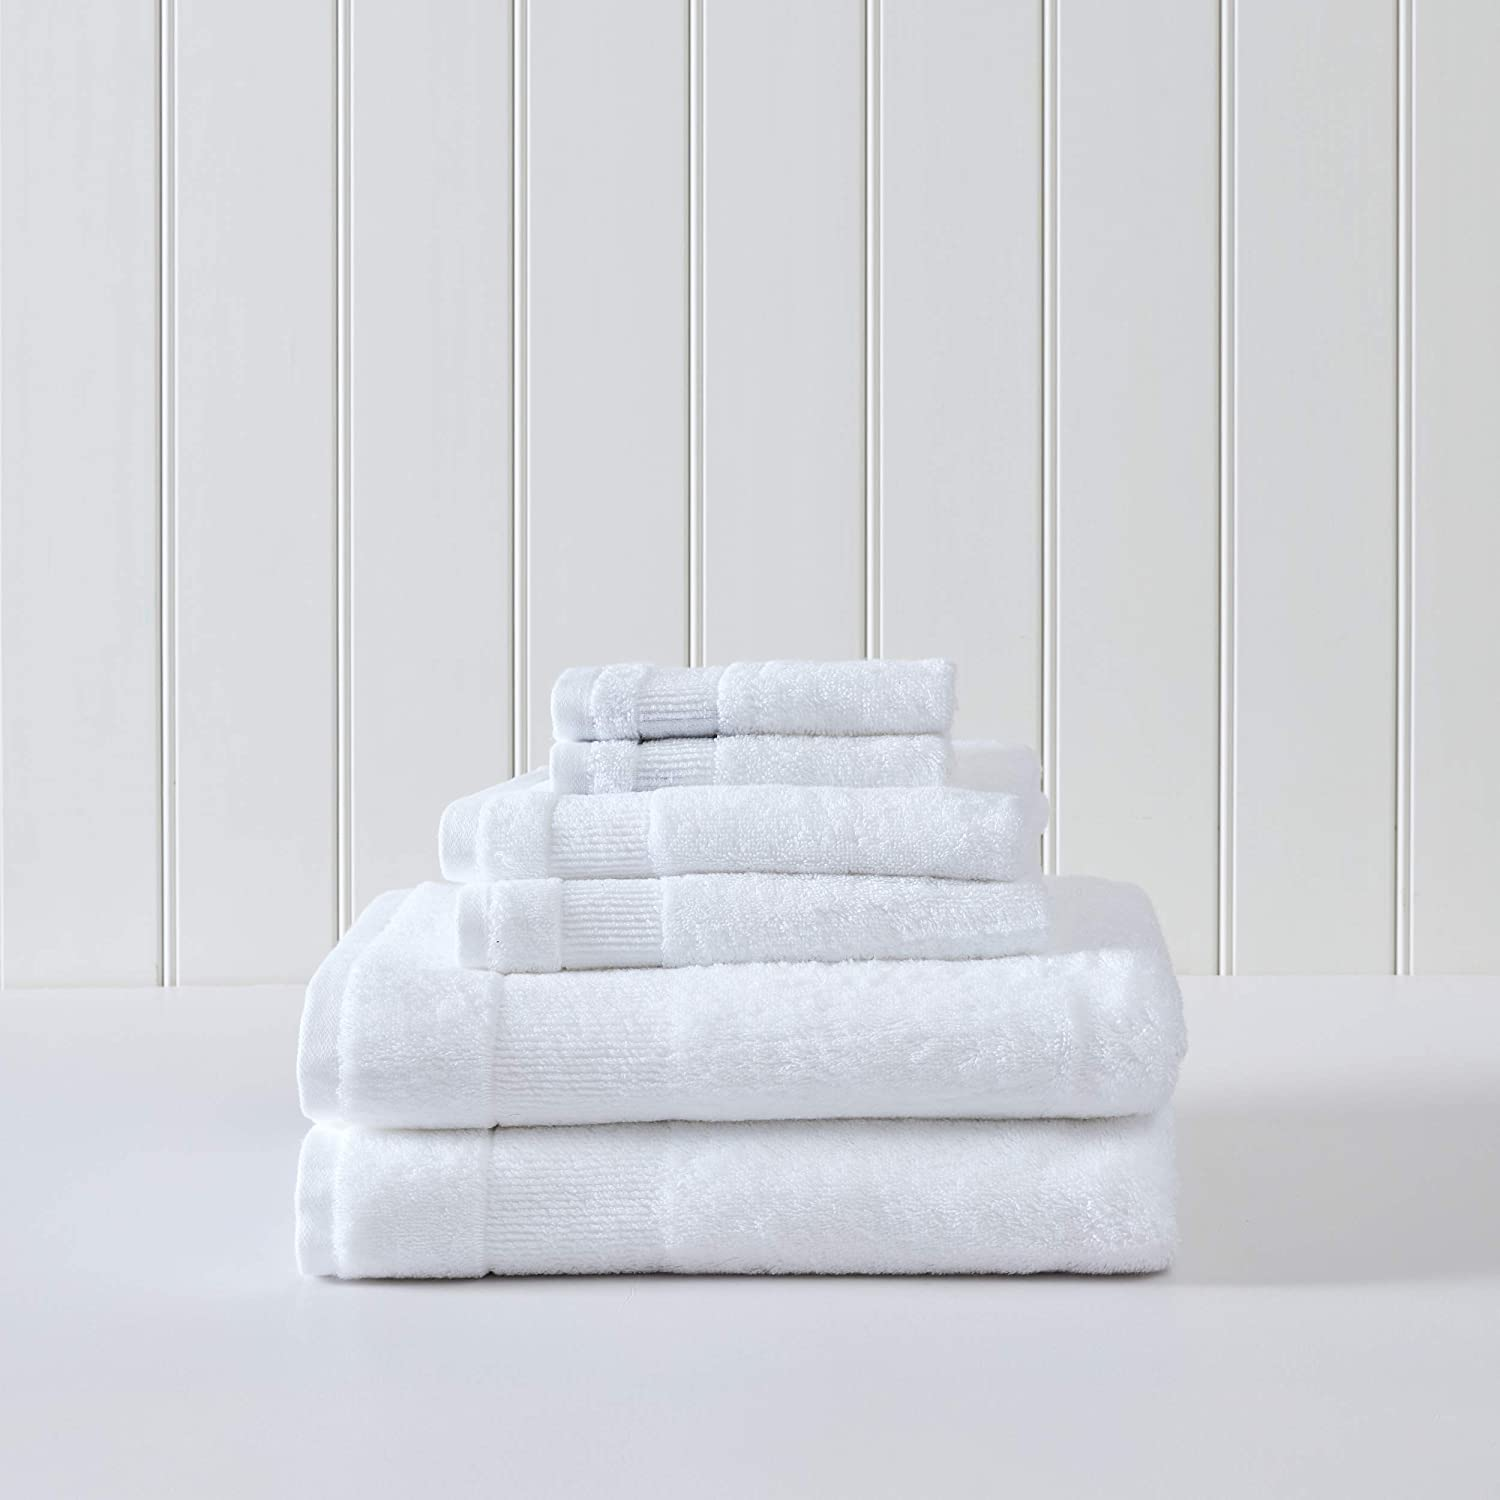 Tommy Bahama | Island Retreat Collection | 6 Piece Towel Set - Decorative Luxury Hotel & Spa Quality Bathroom Linens, Absorbent & Fade Resistant, 6 Piece, White